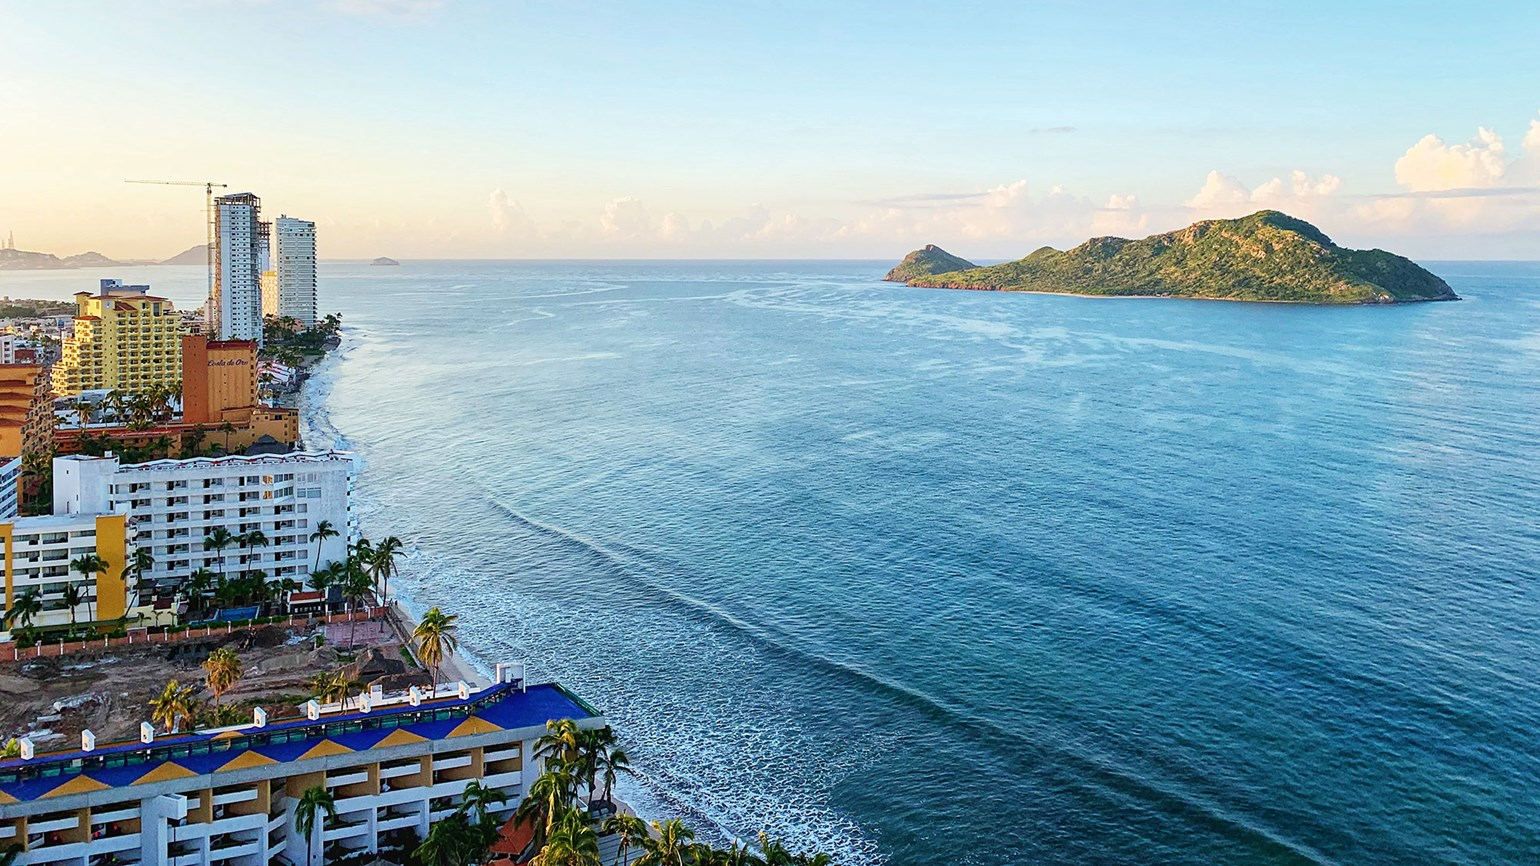 Hyde Hotel brand makes plans for Mazatlan